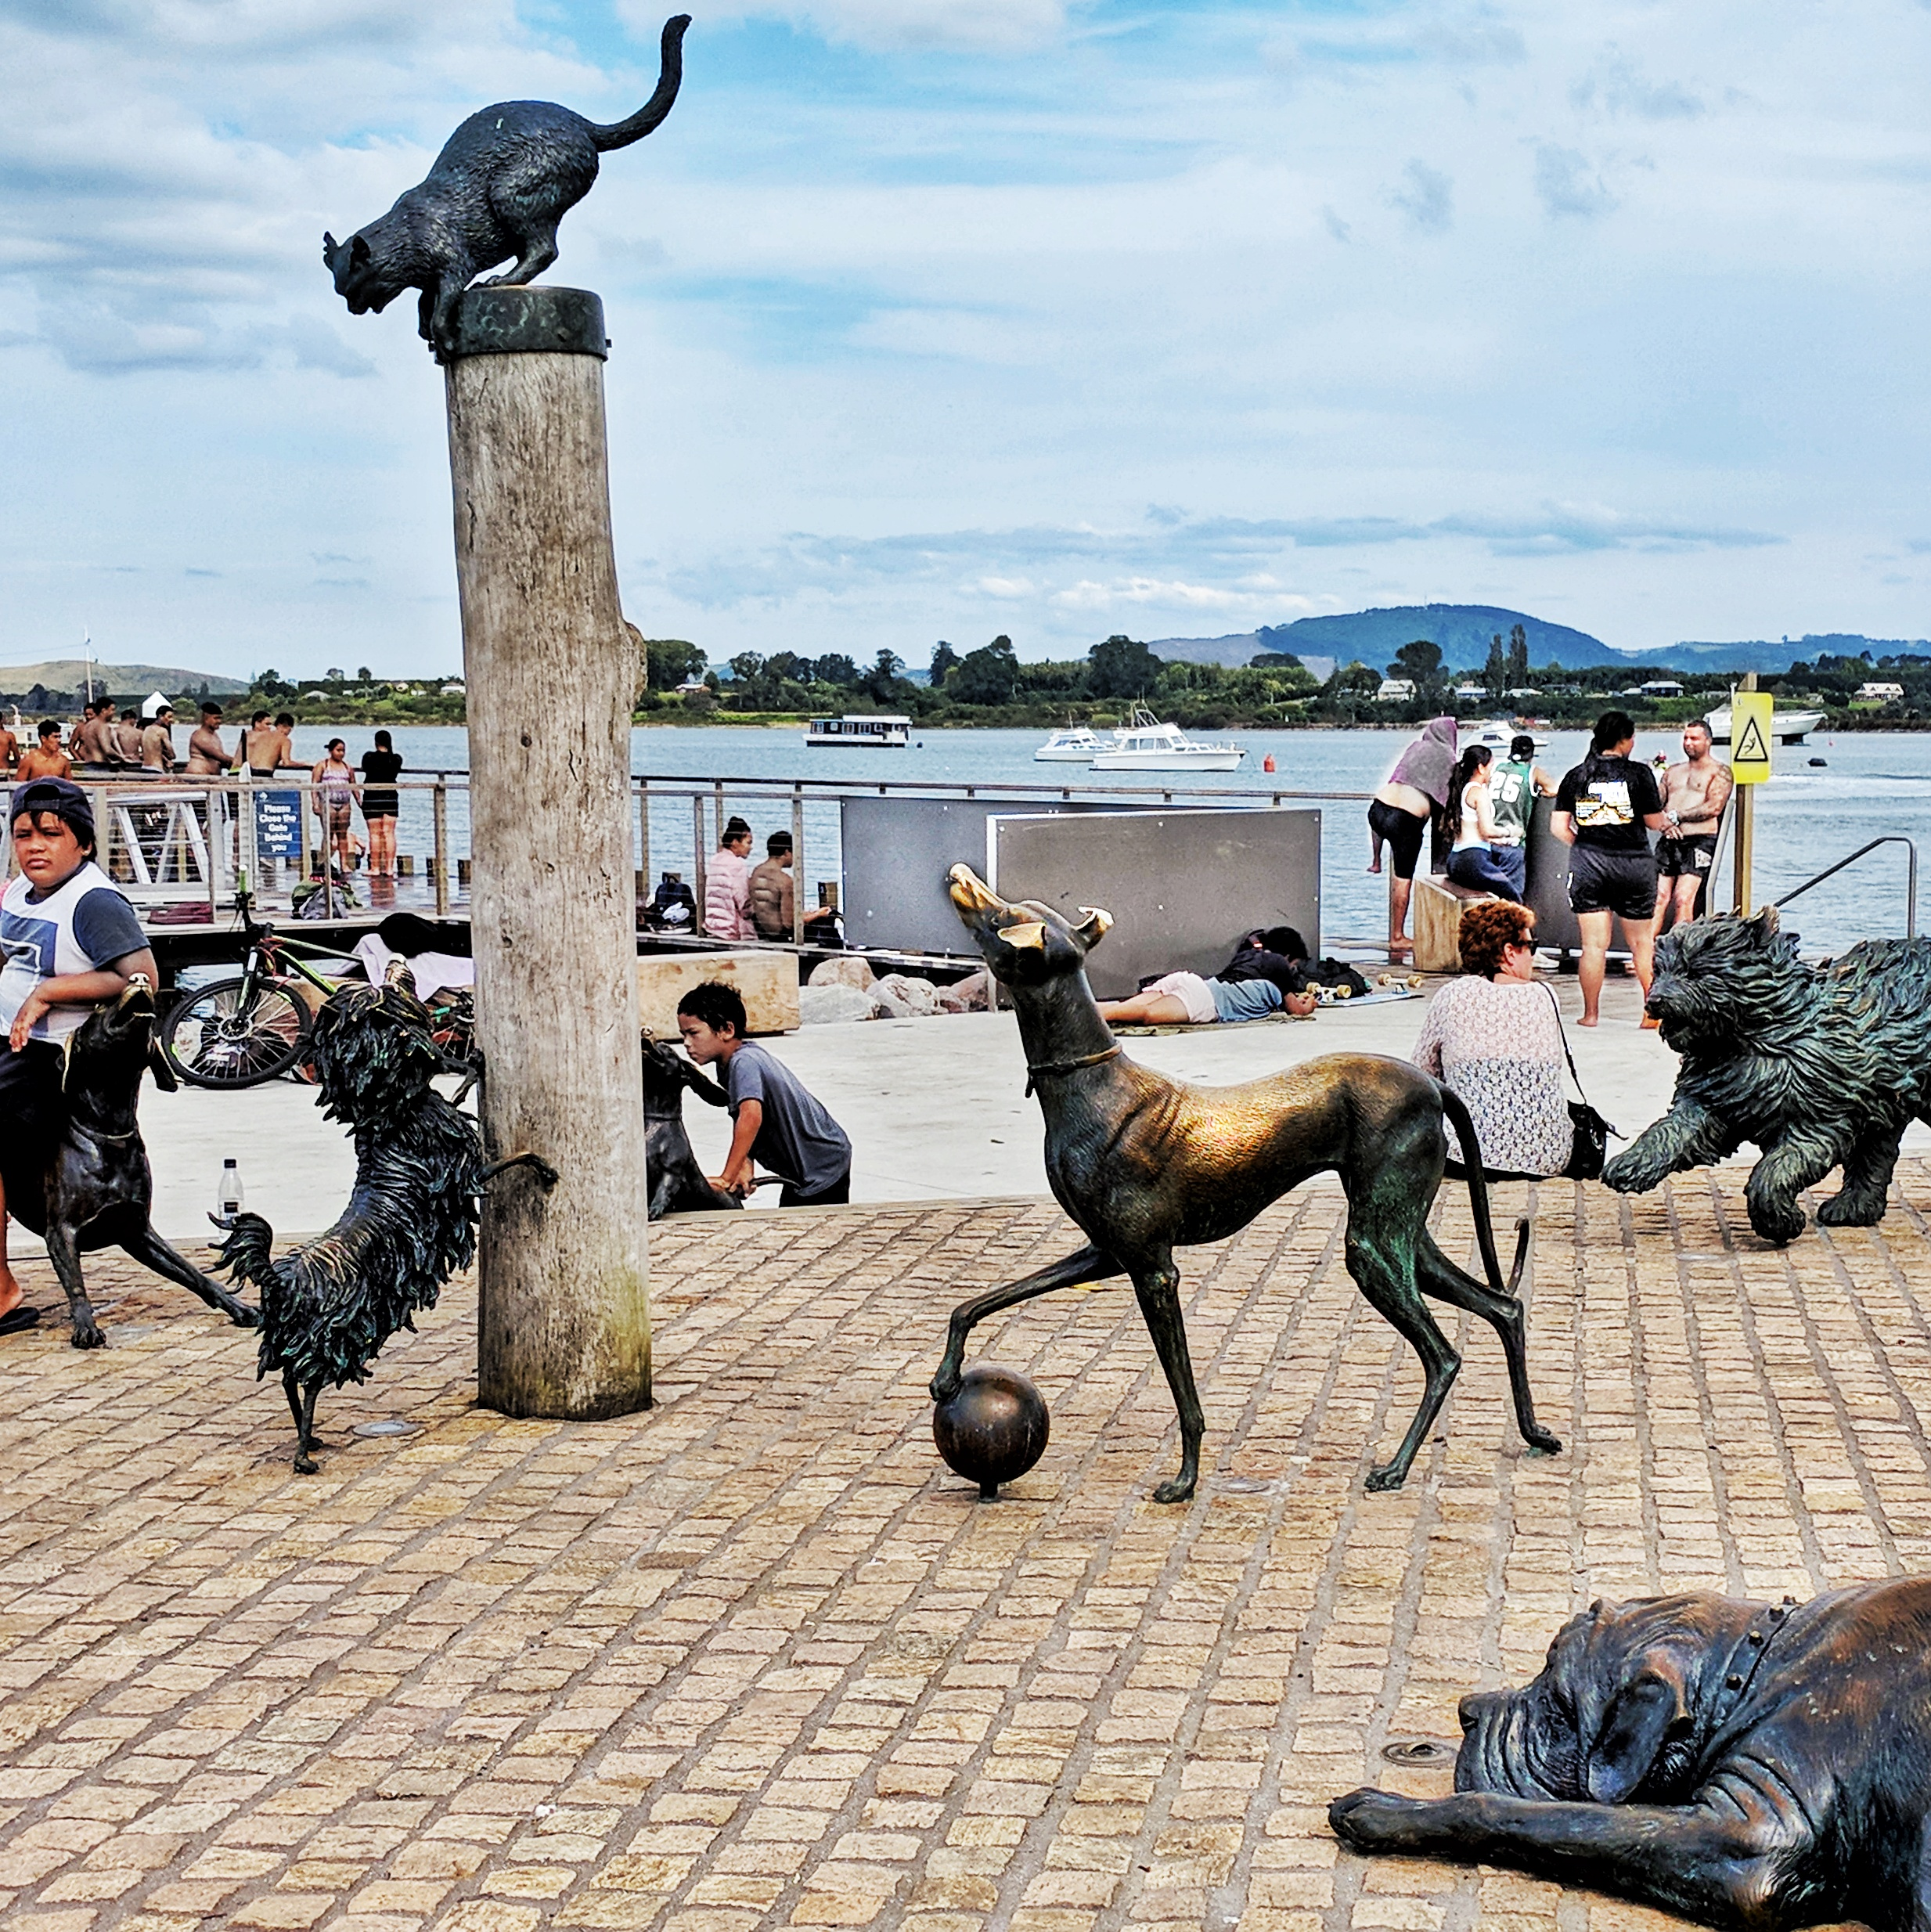 Hairy Maclary and friends sculpture on Tauranga waterfront